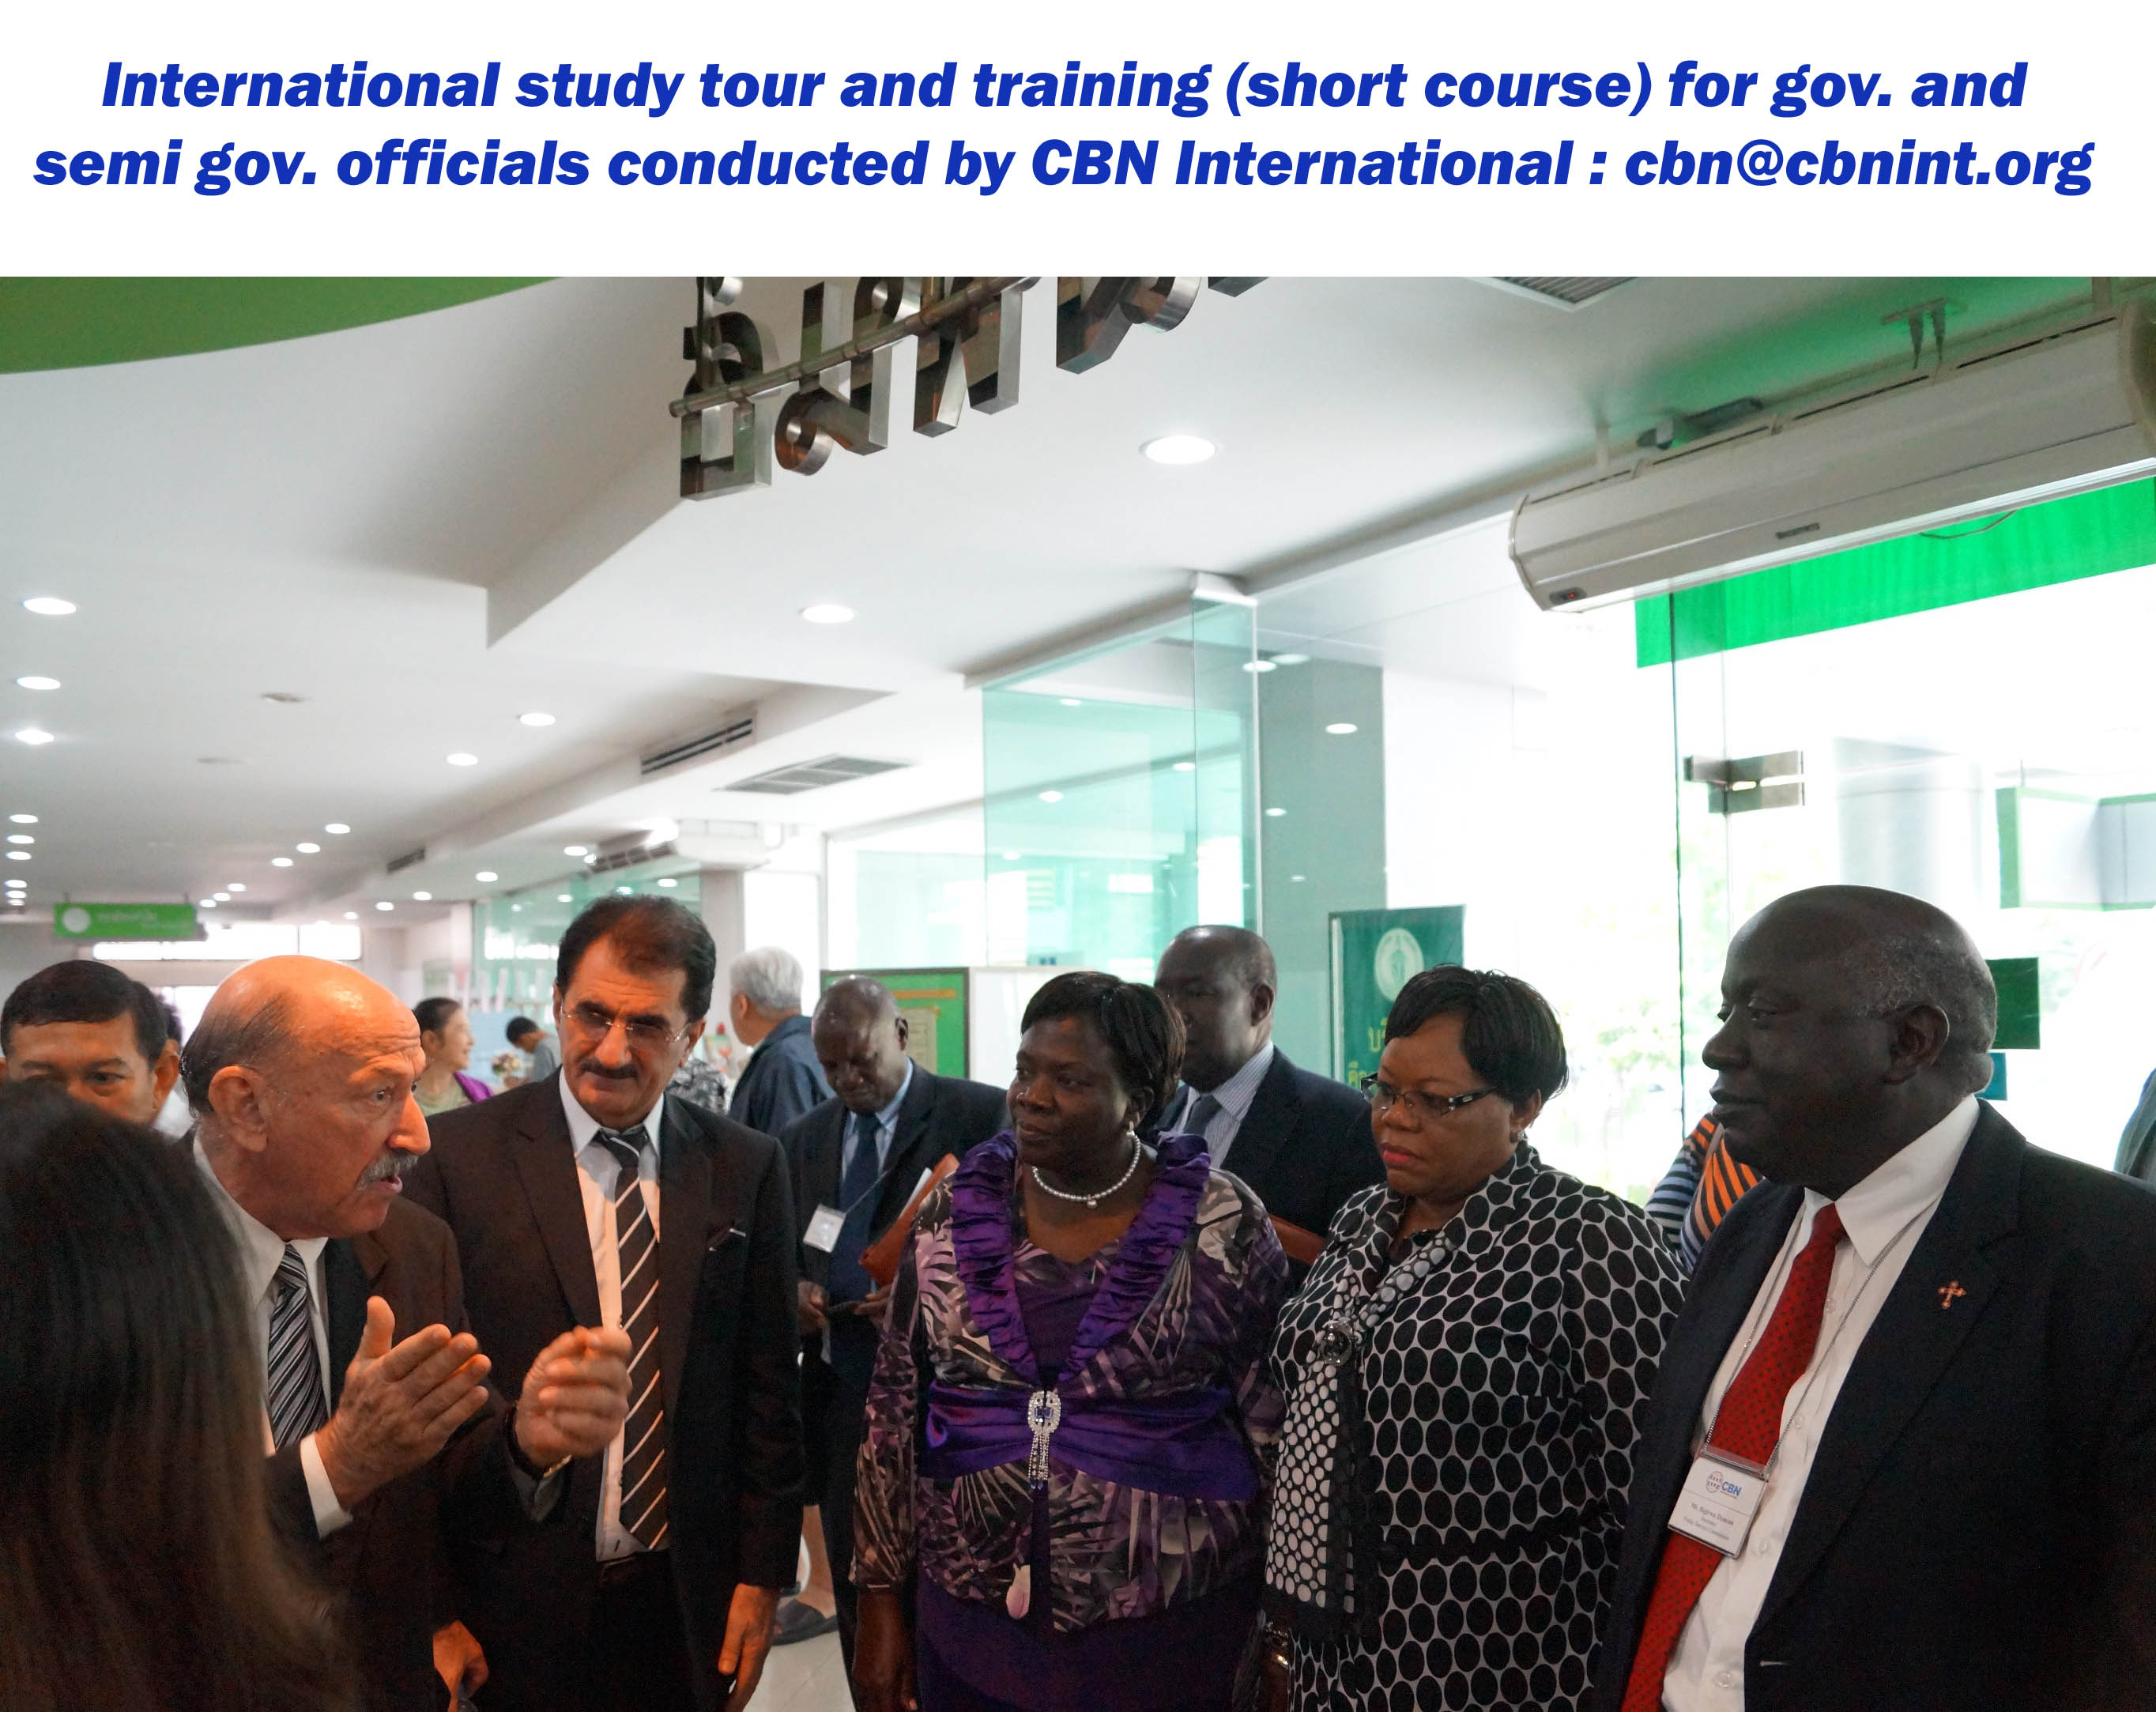 Mr. Victor Greenspoon, CBN resource person in Thailand briefing the participants from Uganda during a CBN International training and study tour programme.